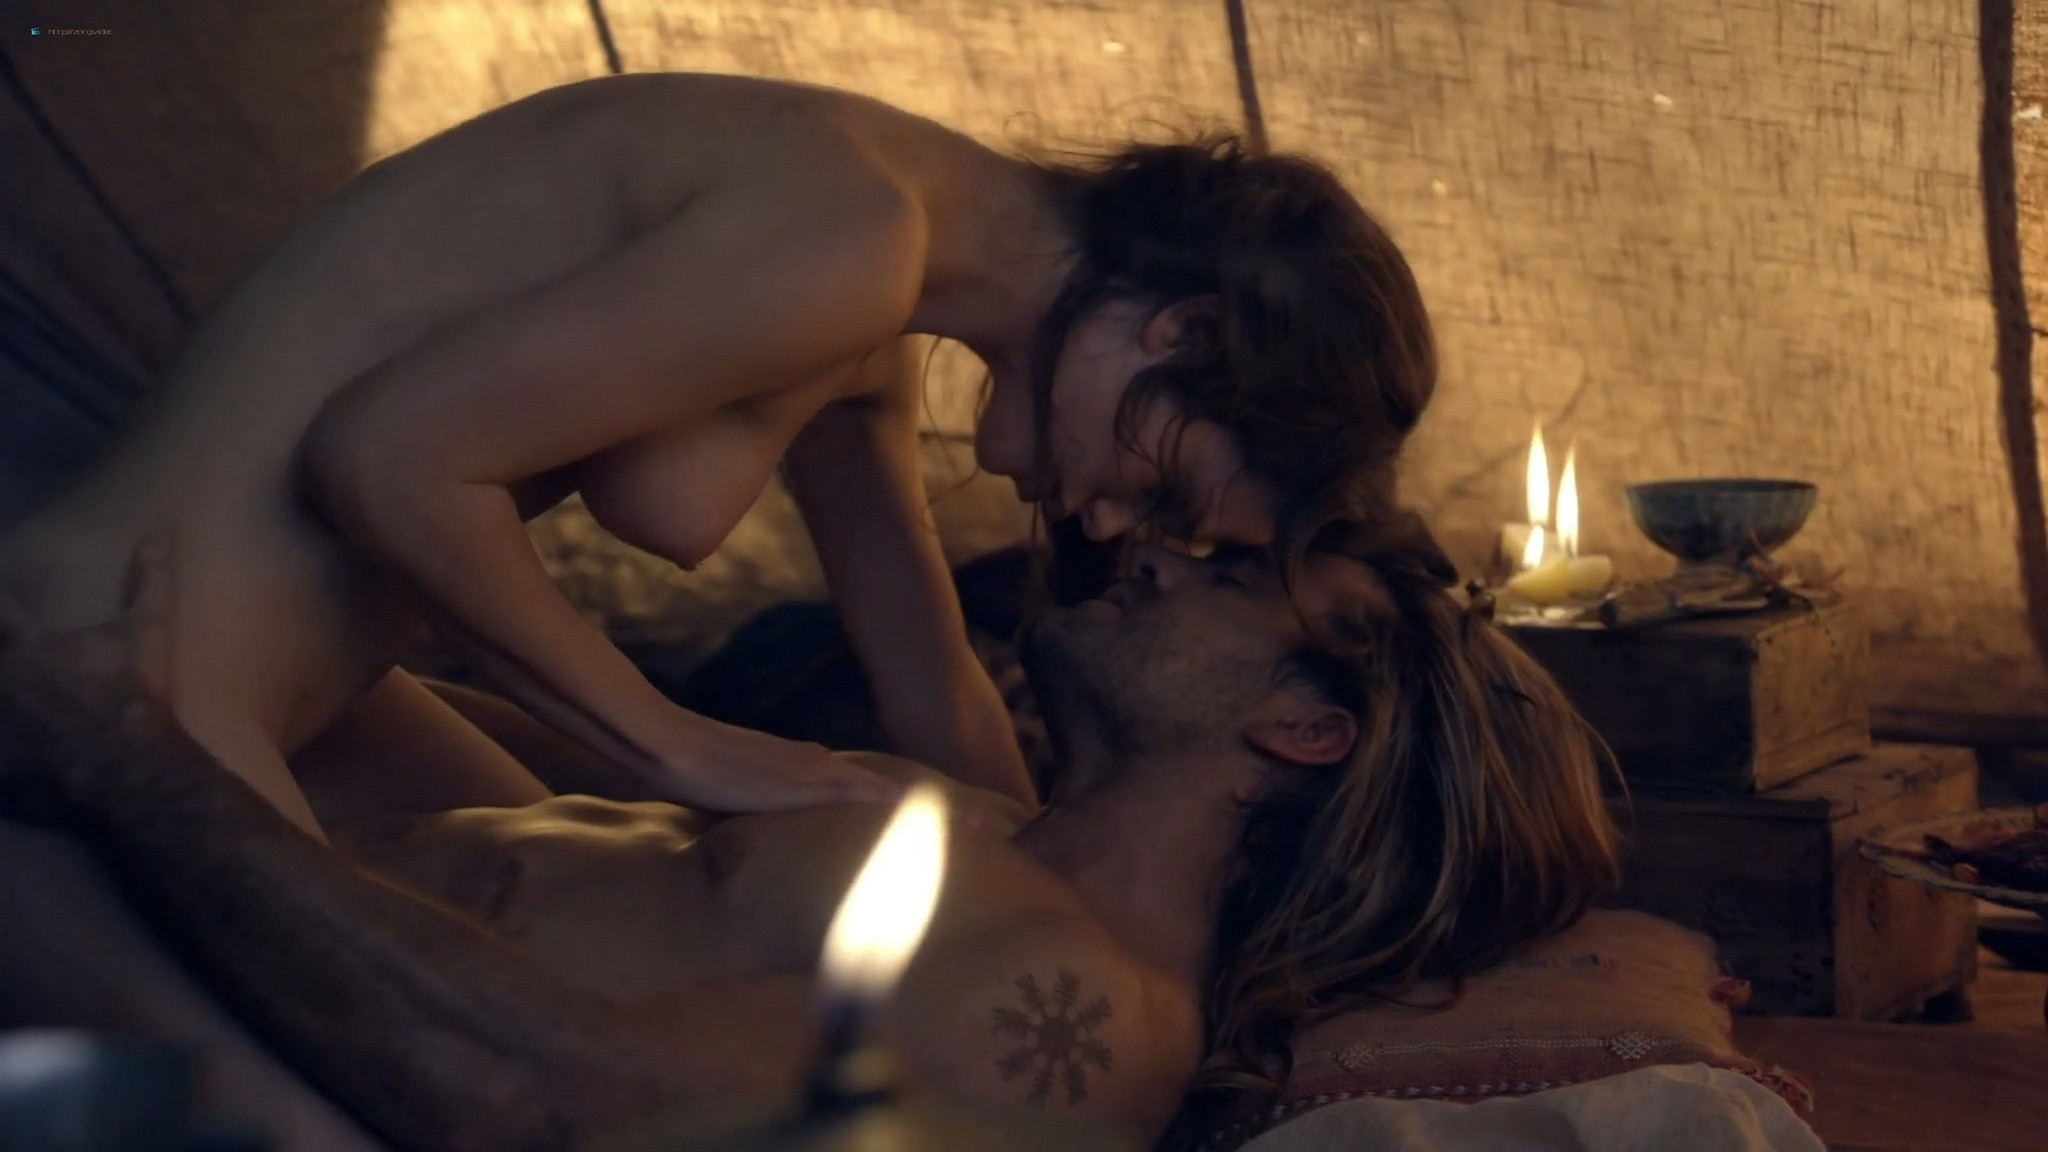 T Ann Robson nude full frontal Gwendoline Taylor nude too Spartacus 2013 s3e9 10 1080p BluRay 010